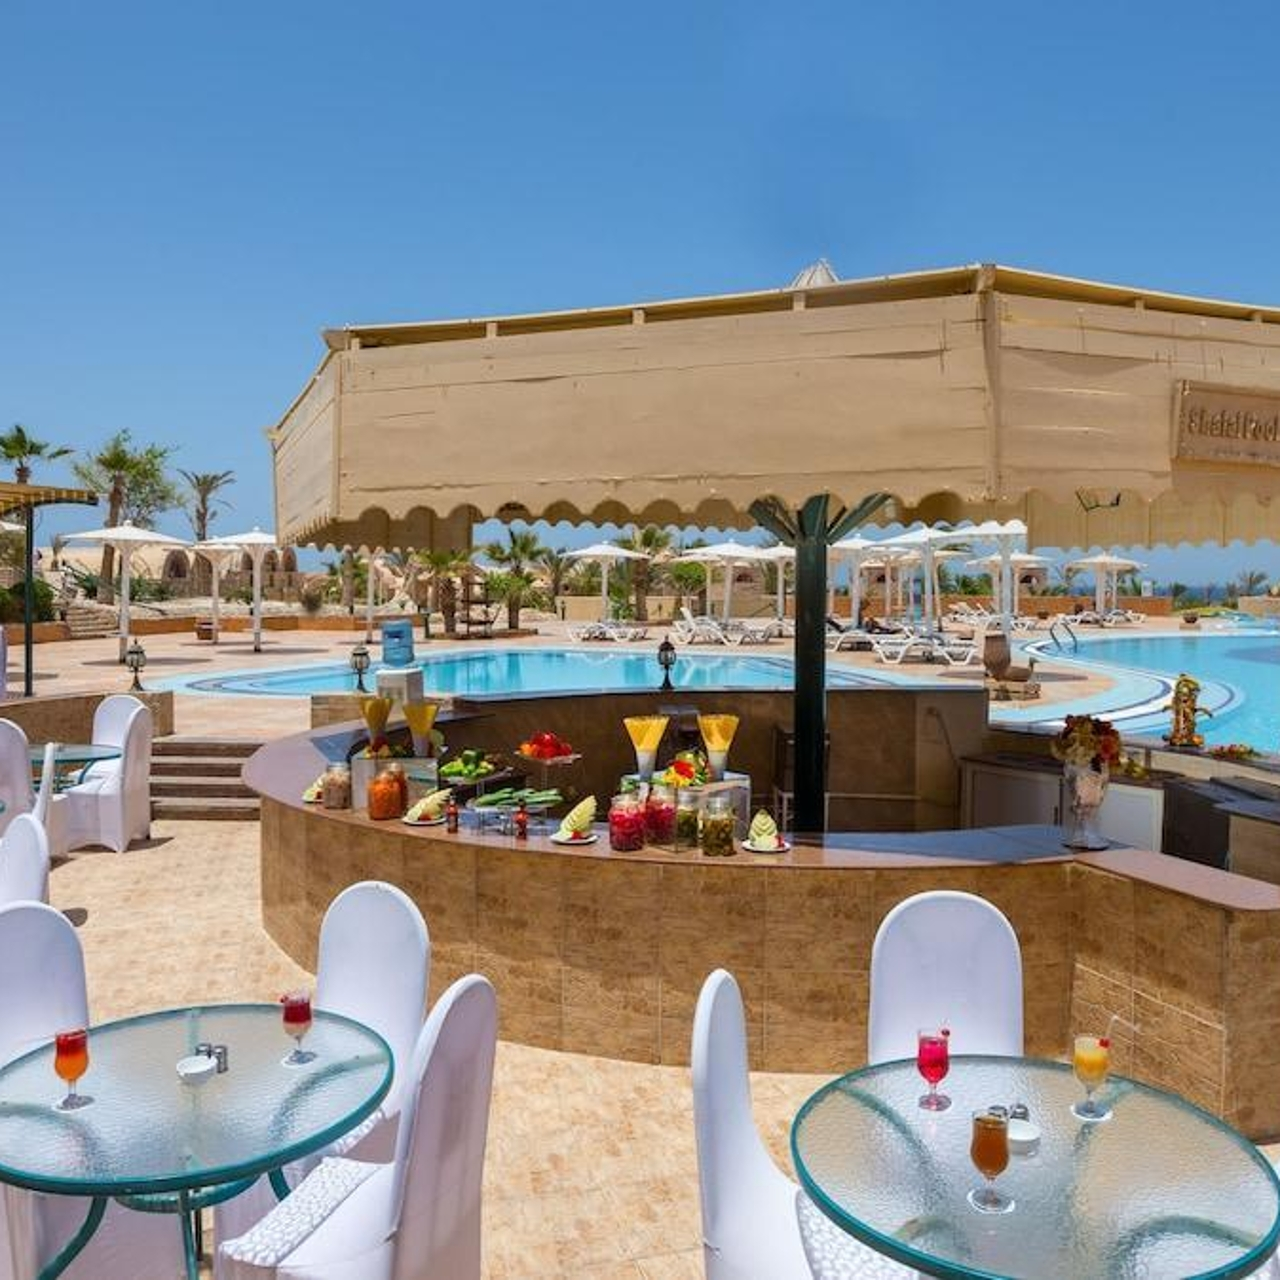 Hotel Utopia Beach Club Egypt At Hrs With Free Services